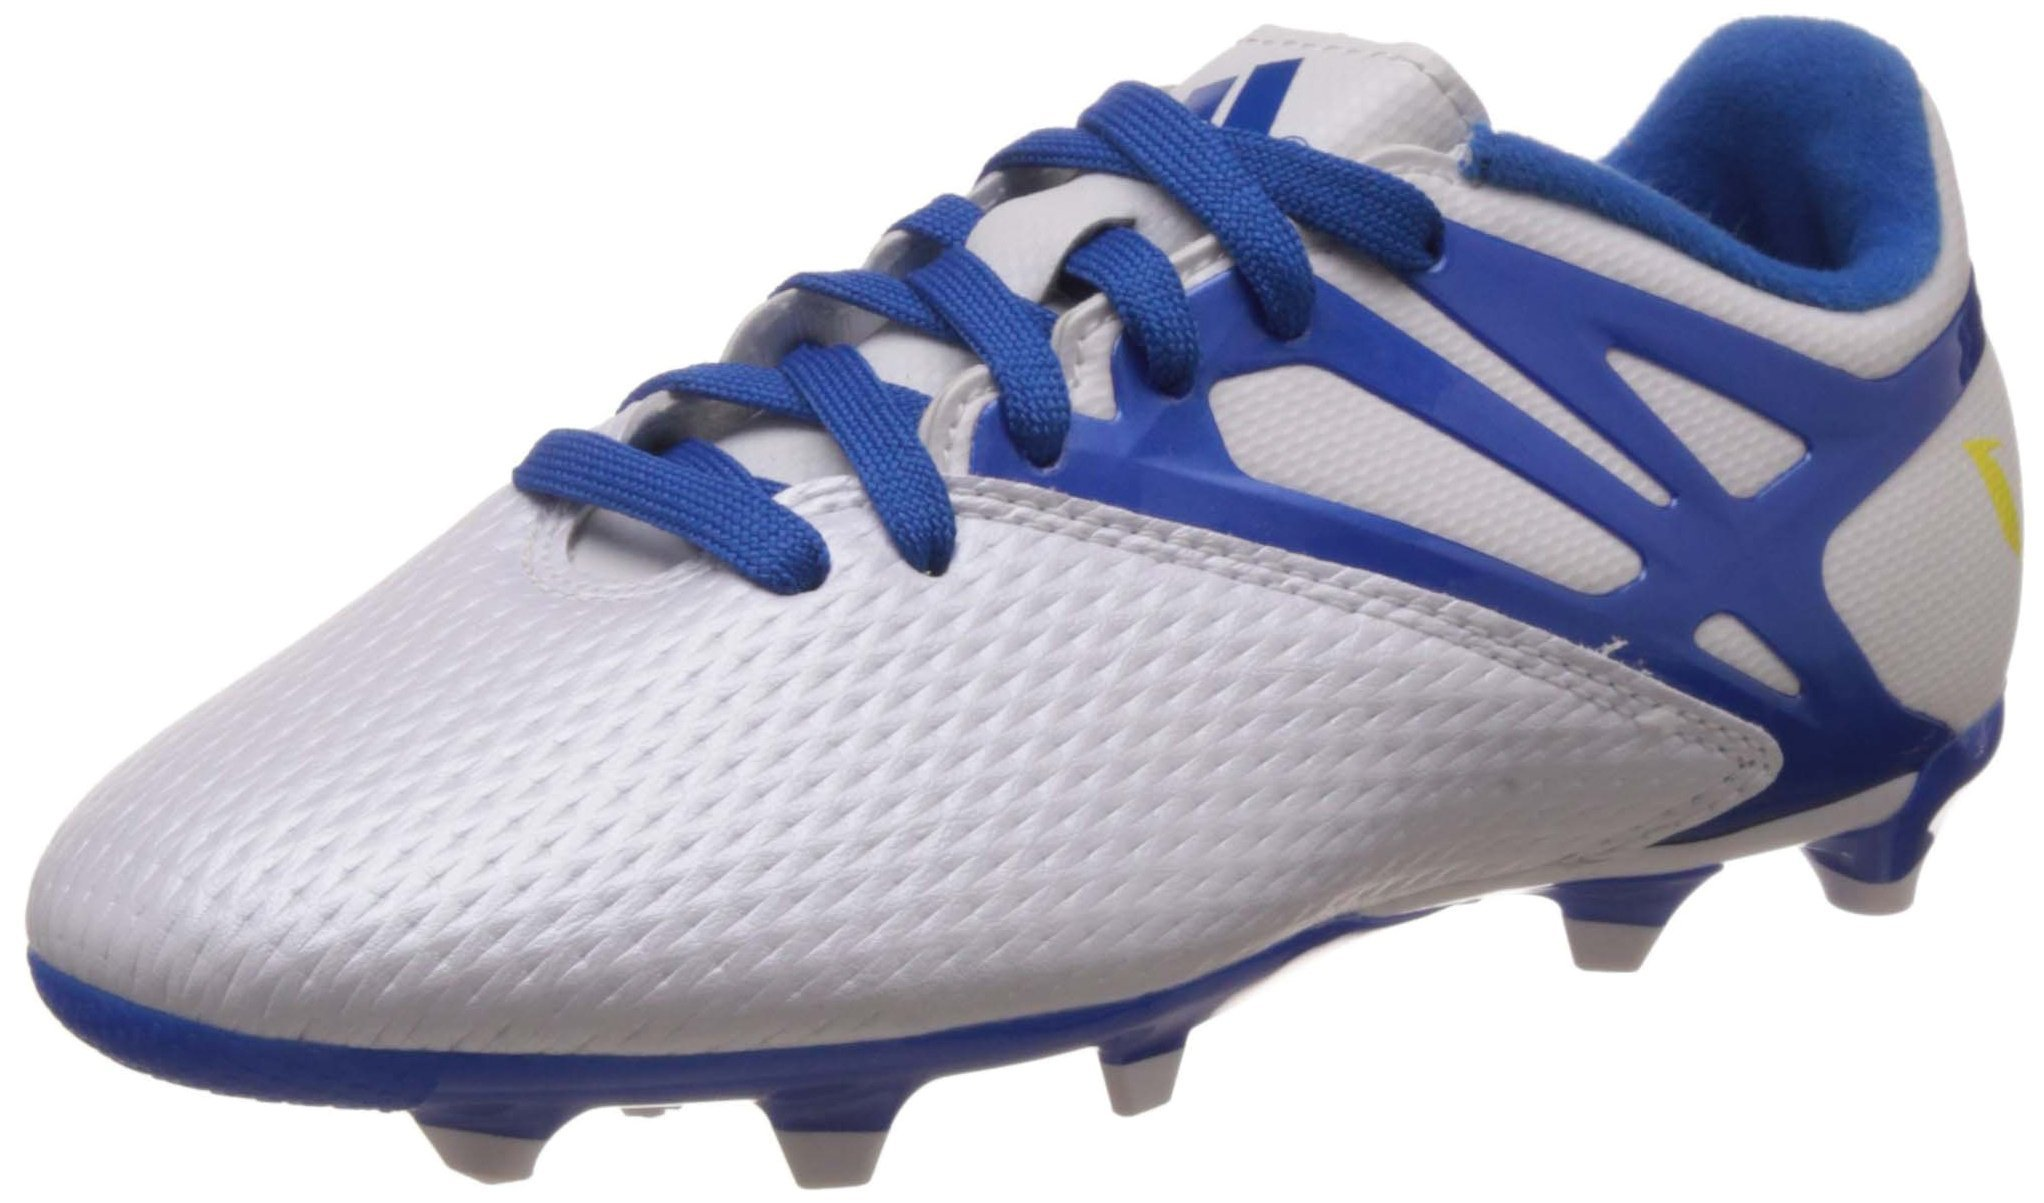 adidas Messi 15.3 FG/AG White Junior Soccer Cleats, Size 3.5